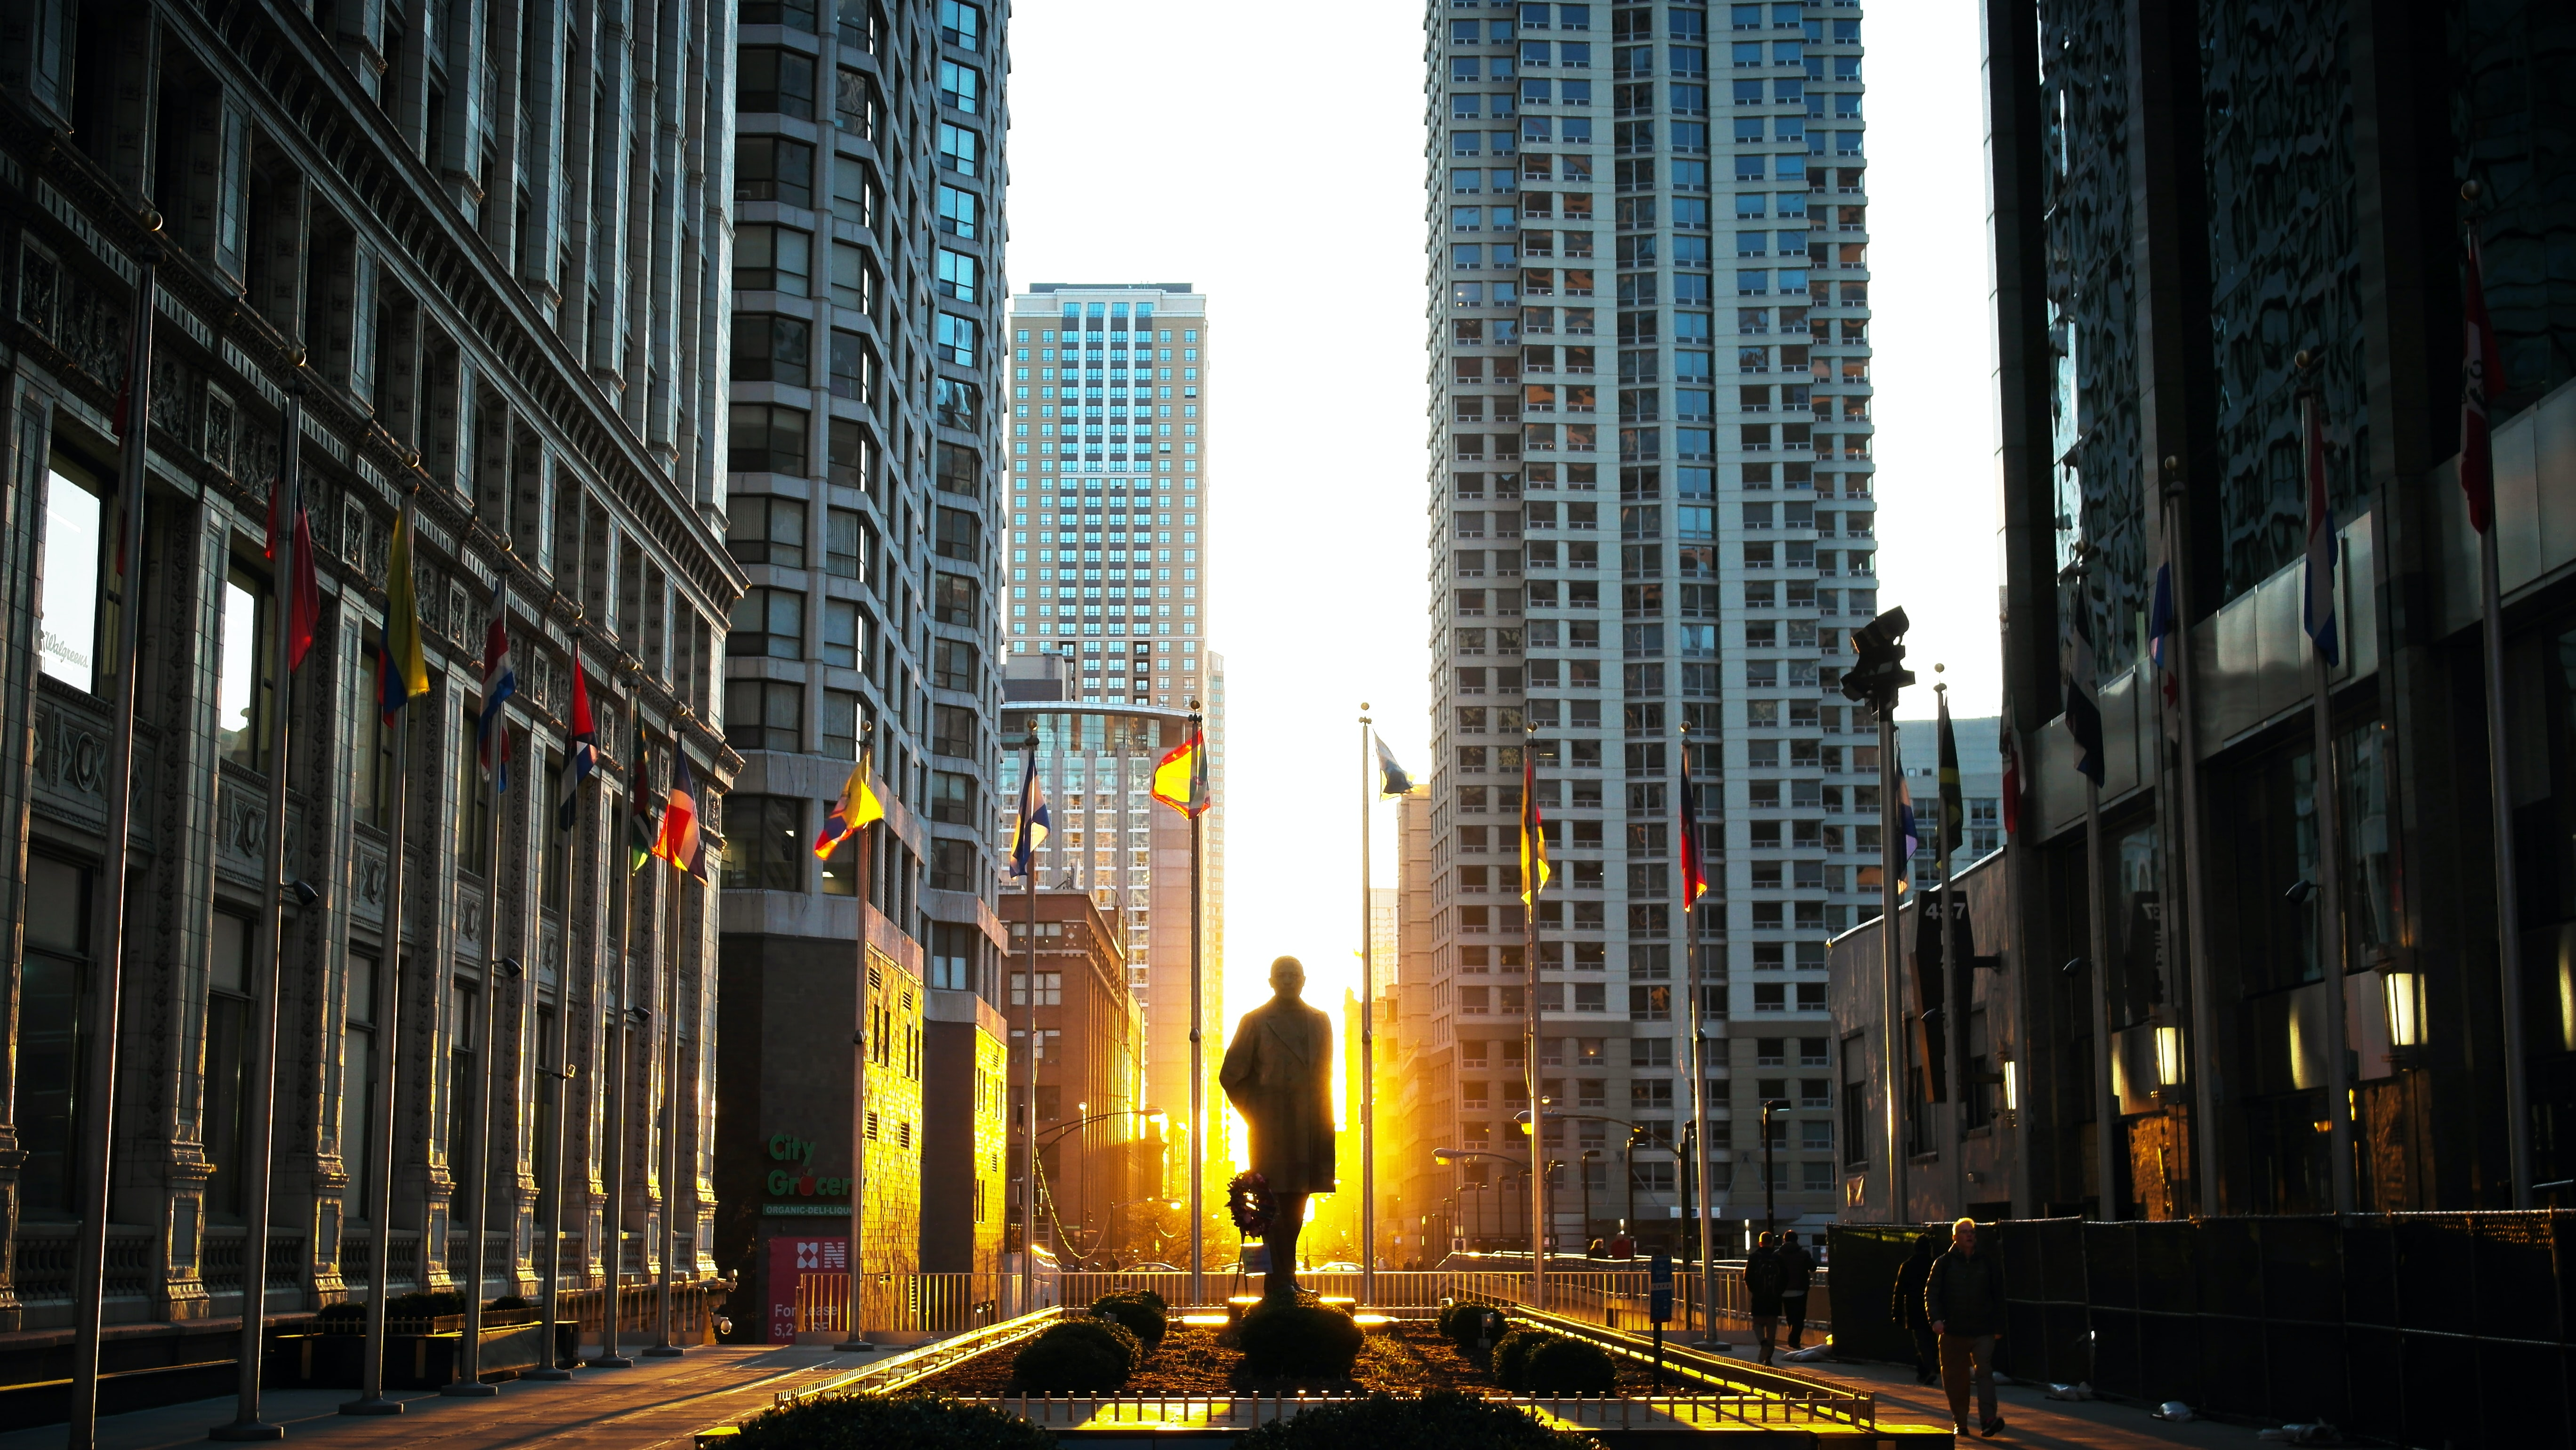 silhouette of statue at the park surrounded by high rise building